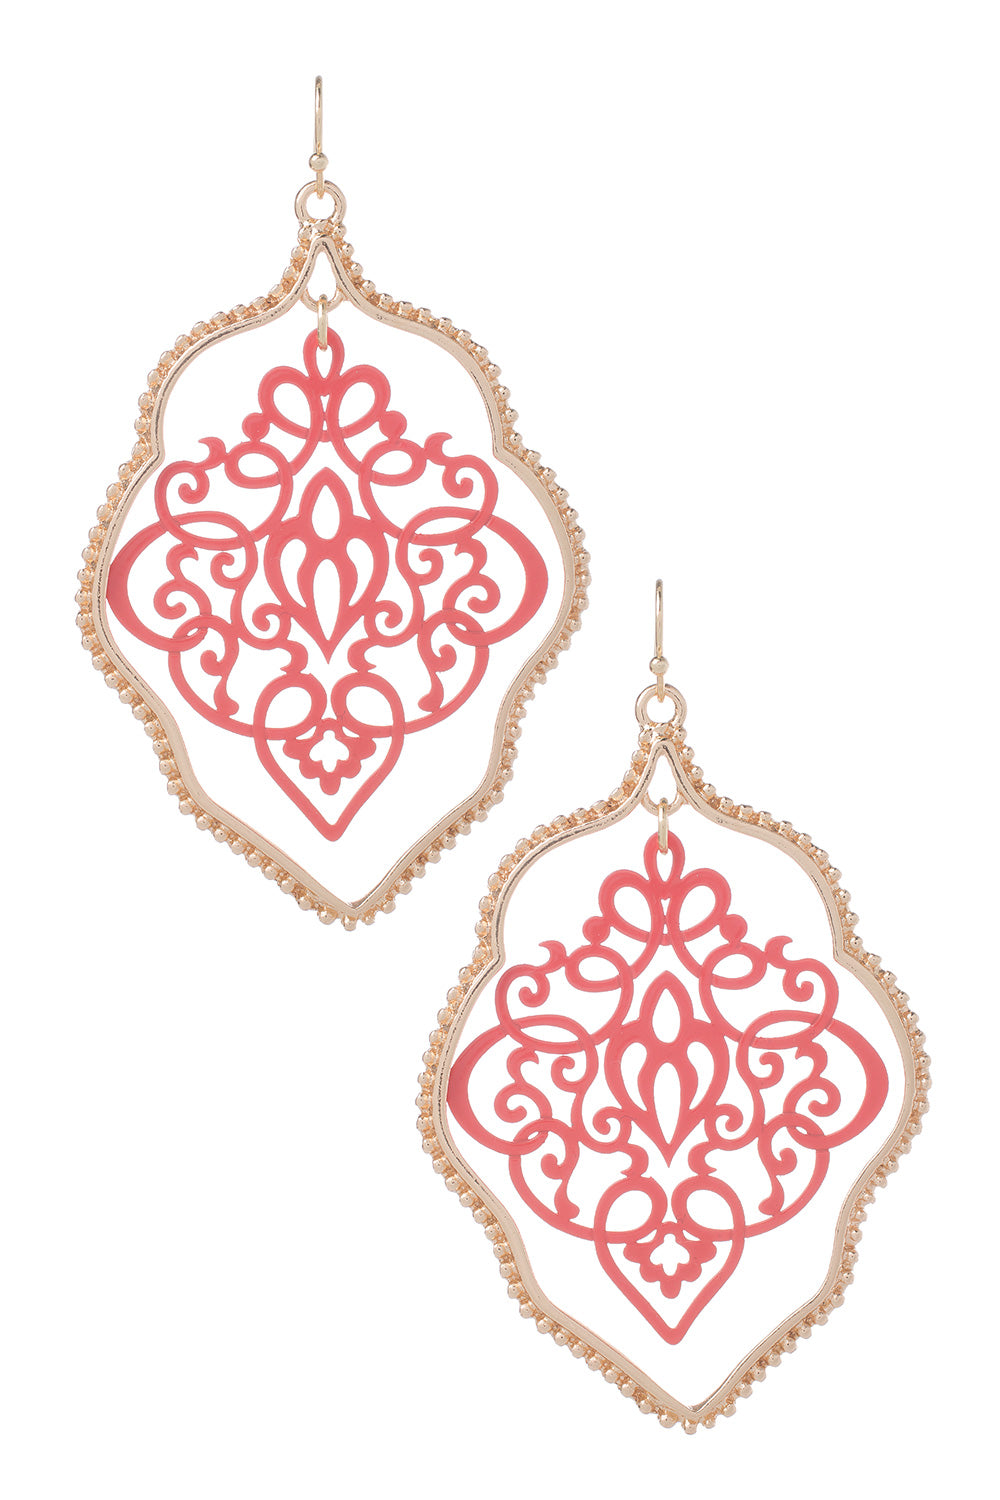 Type 3 Doily Frame Earrings in Red